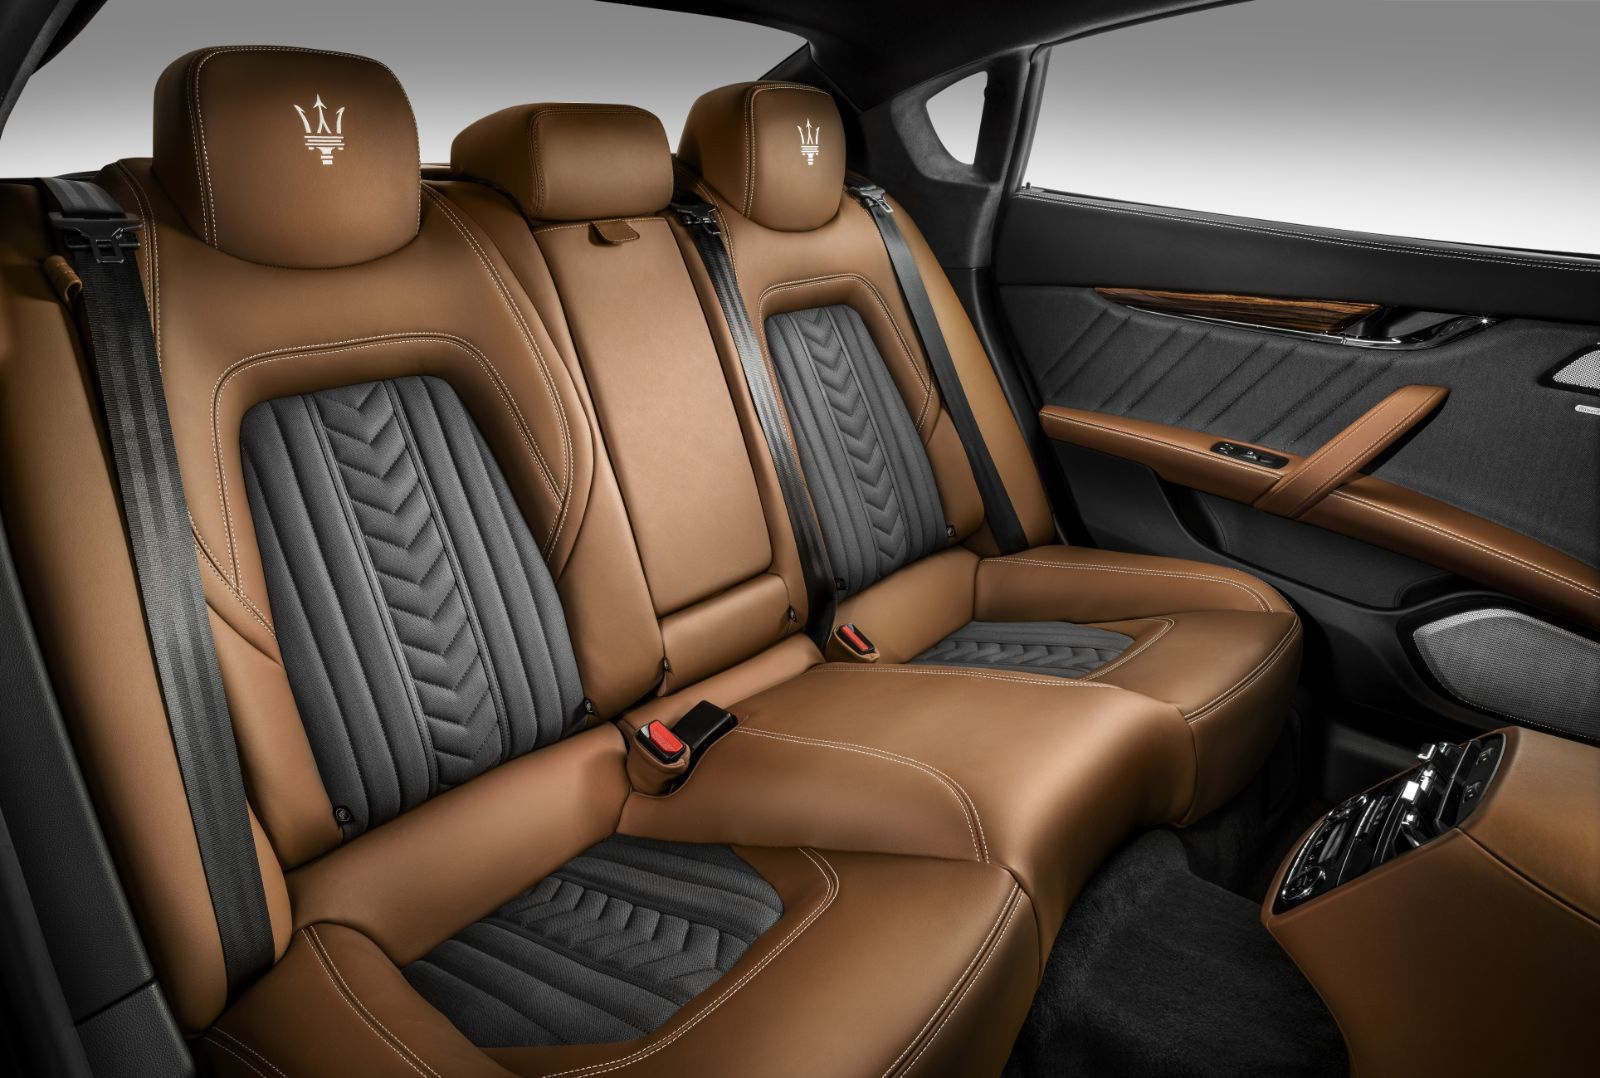 Pin By Central Car Cushion On Leather Seat Custom Car Interior Car Interior Truck Interior